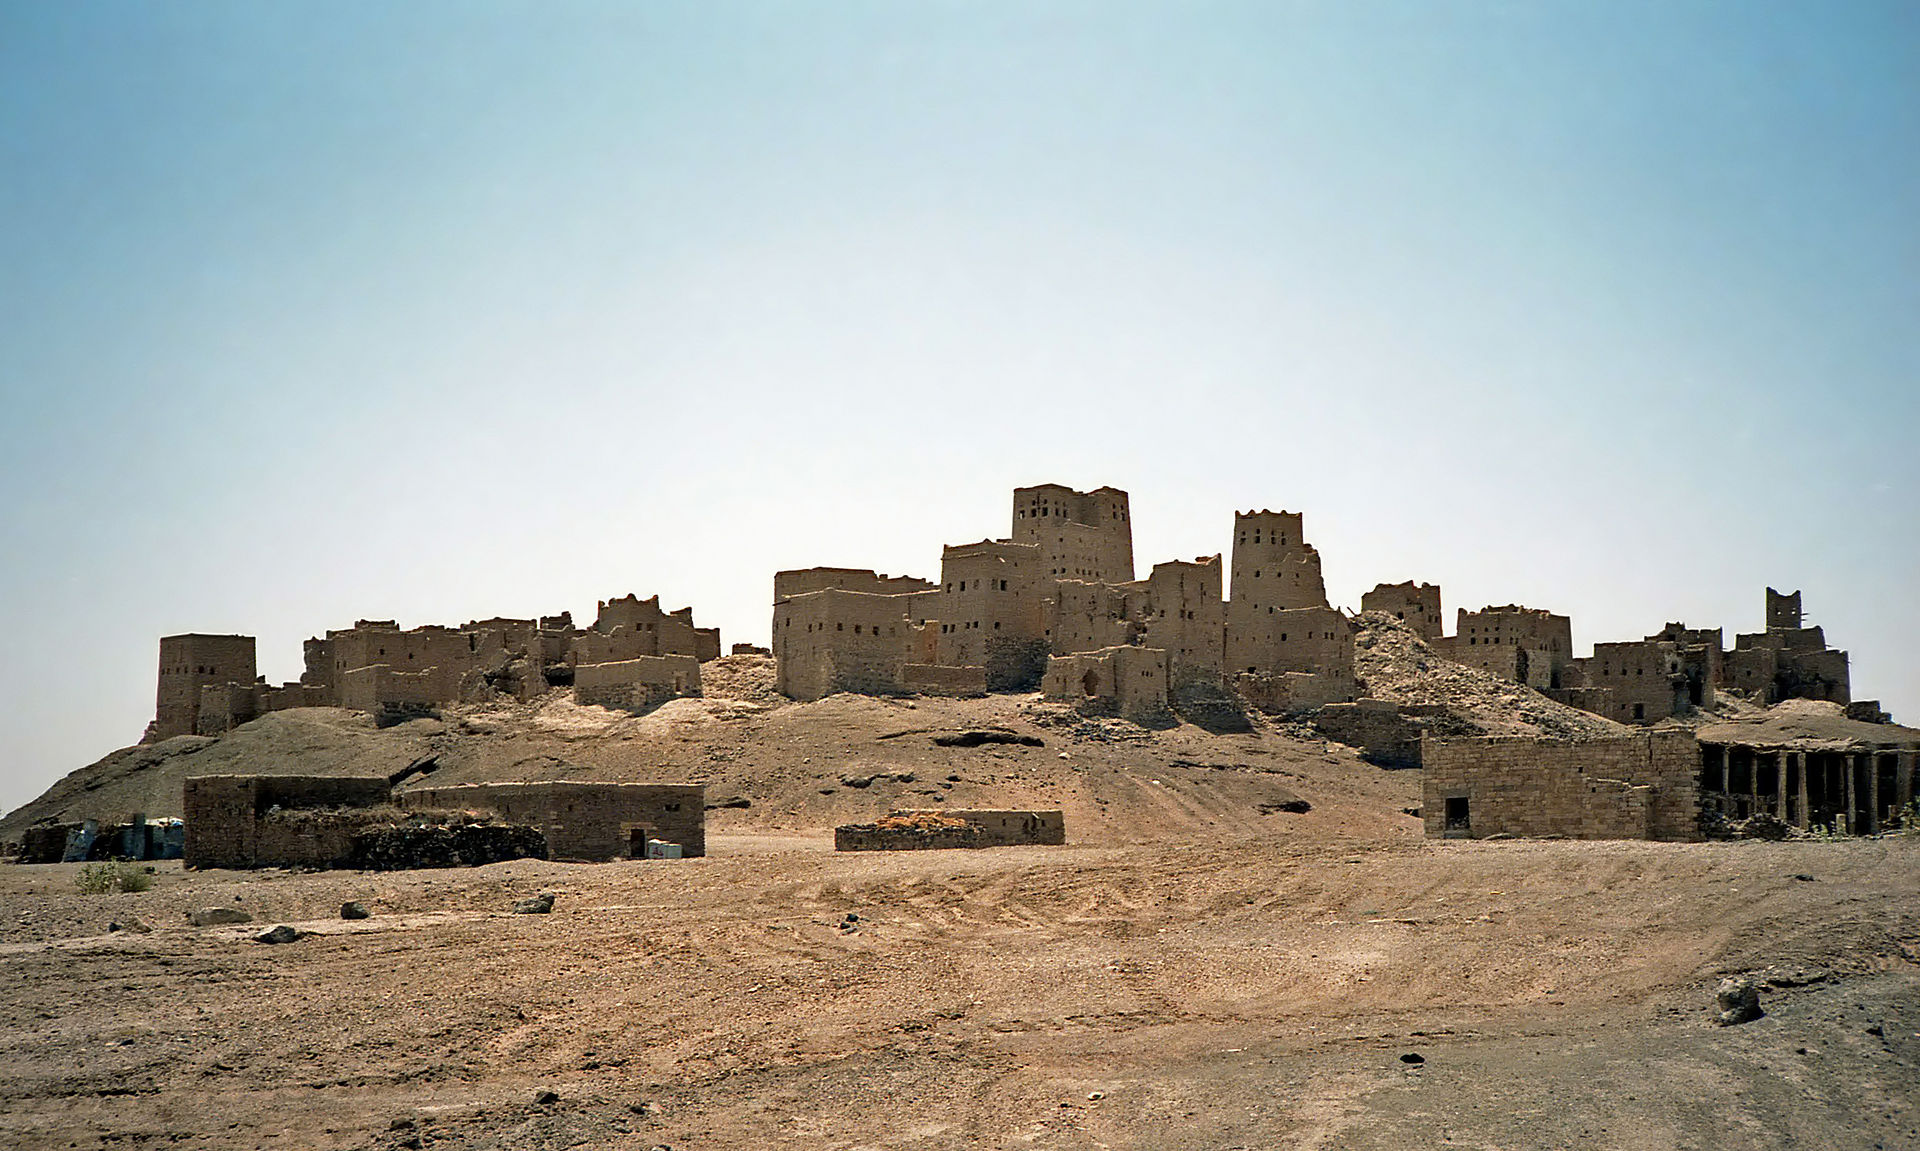 The ruins of Old Ma'rib, which lies to the south of the modern city